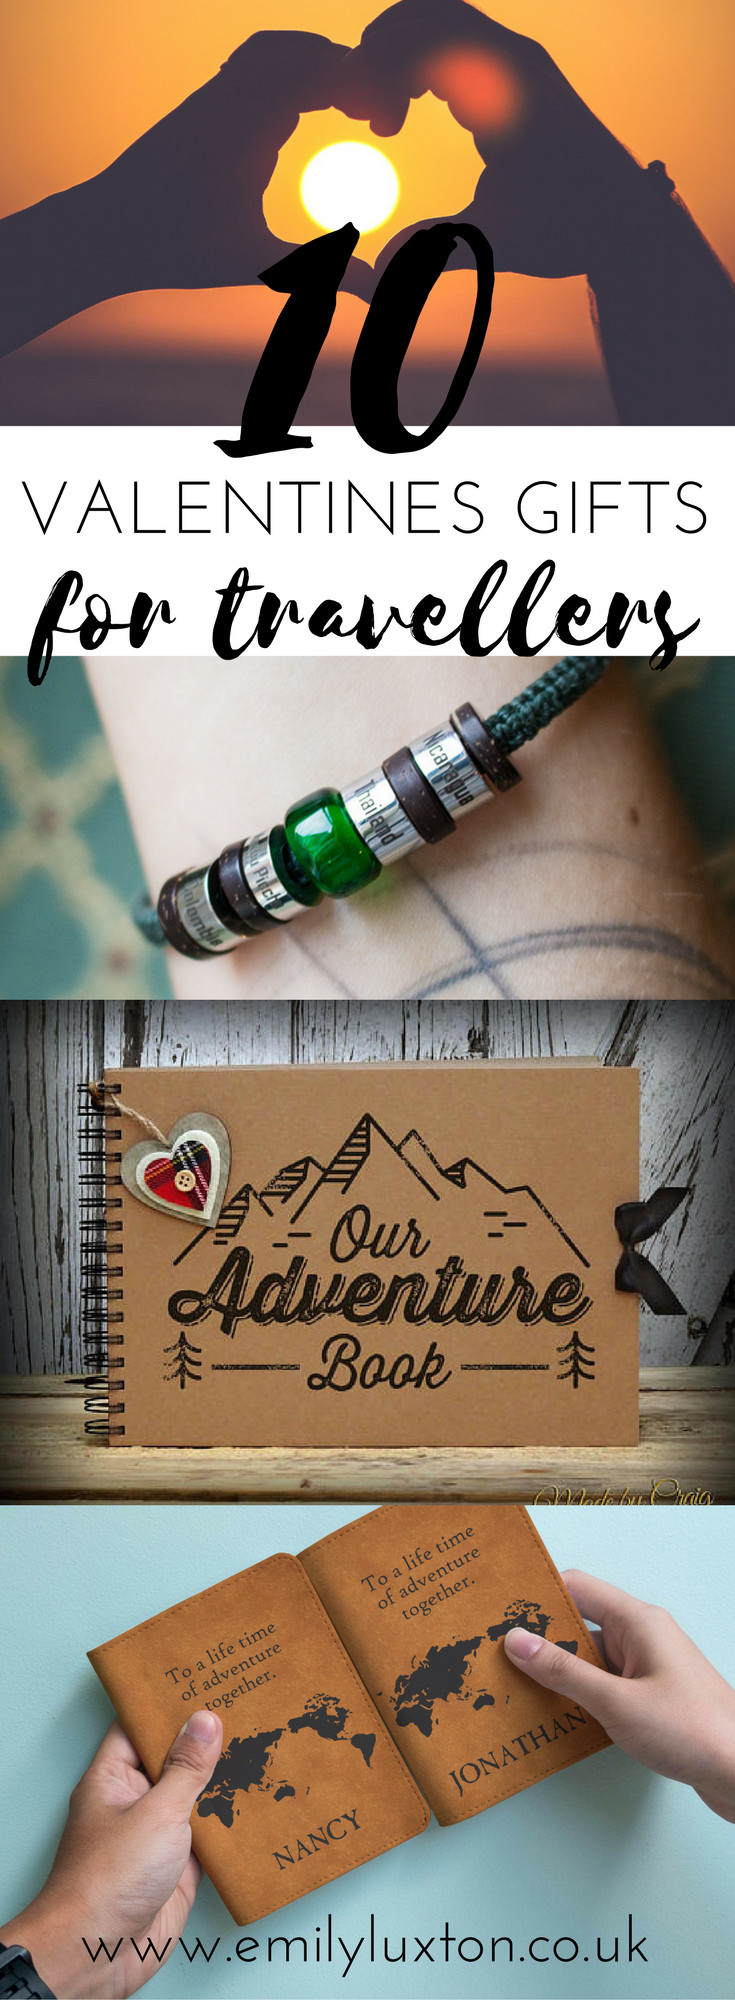 Mens Valentines Gift Ideas Uk  10 Unique Valentine s Gifts for Travel Lovers